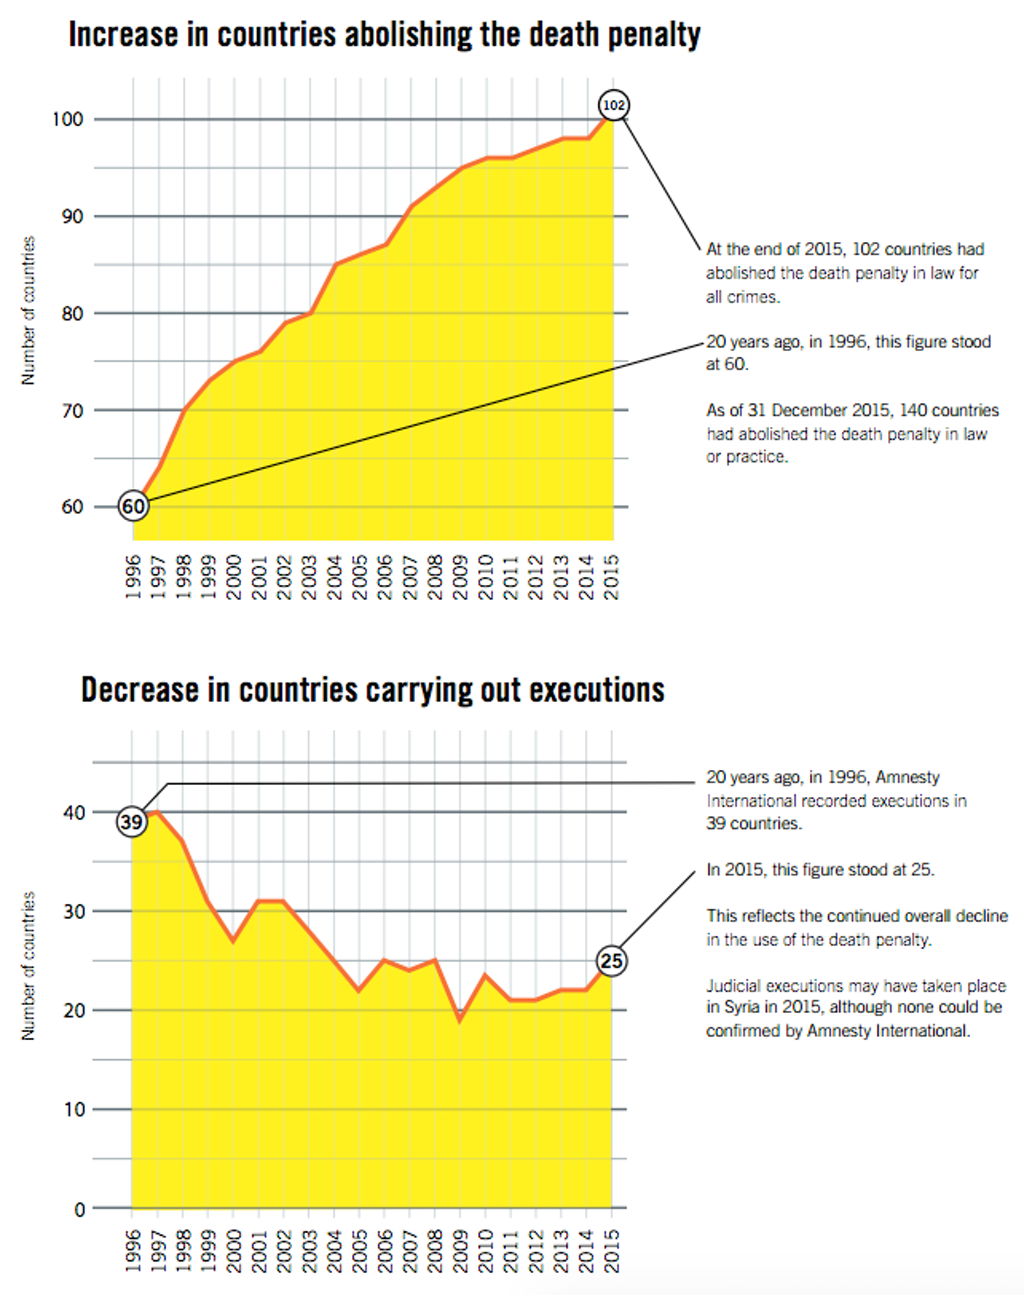 Amnesty International Reports Concentrated Spikes in Executions Amidst Continuing Trend Towards Global Death Penalty Abolition